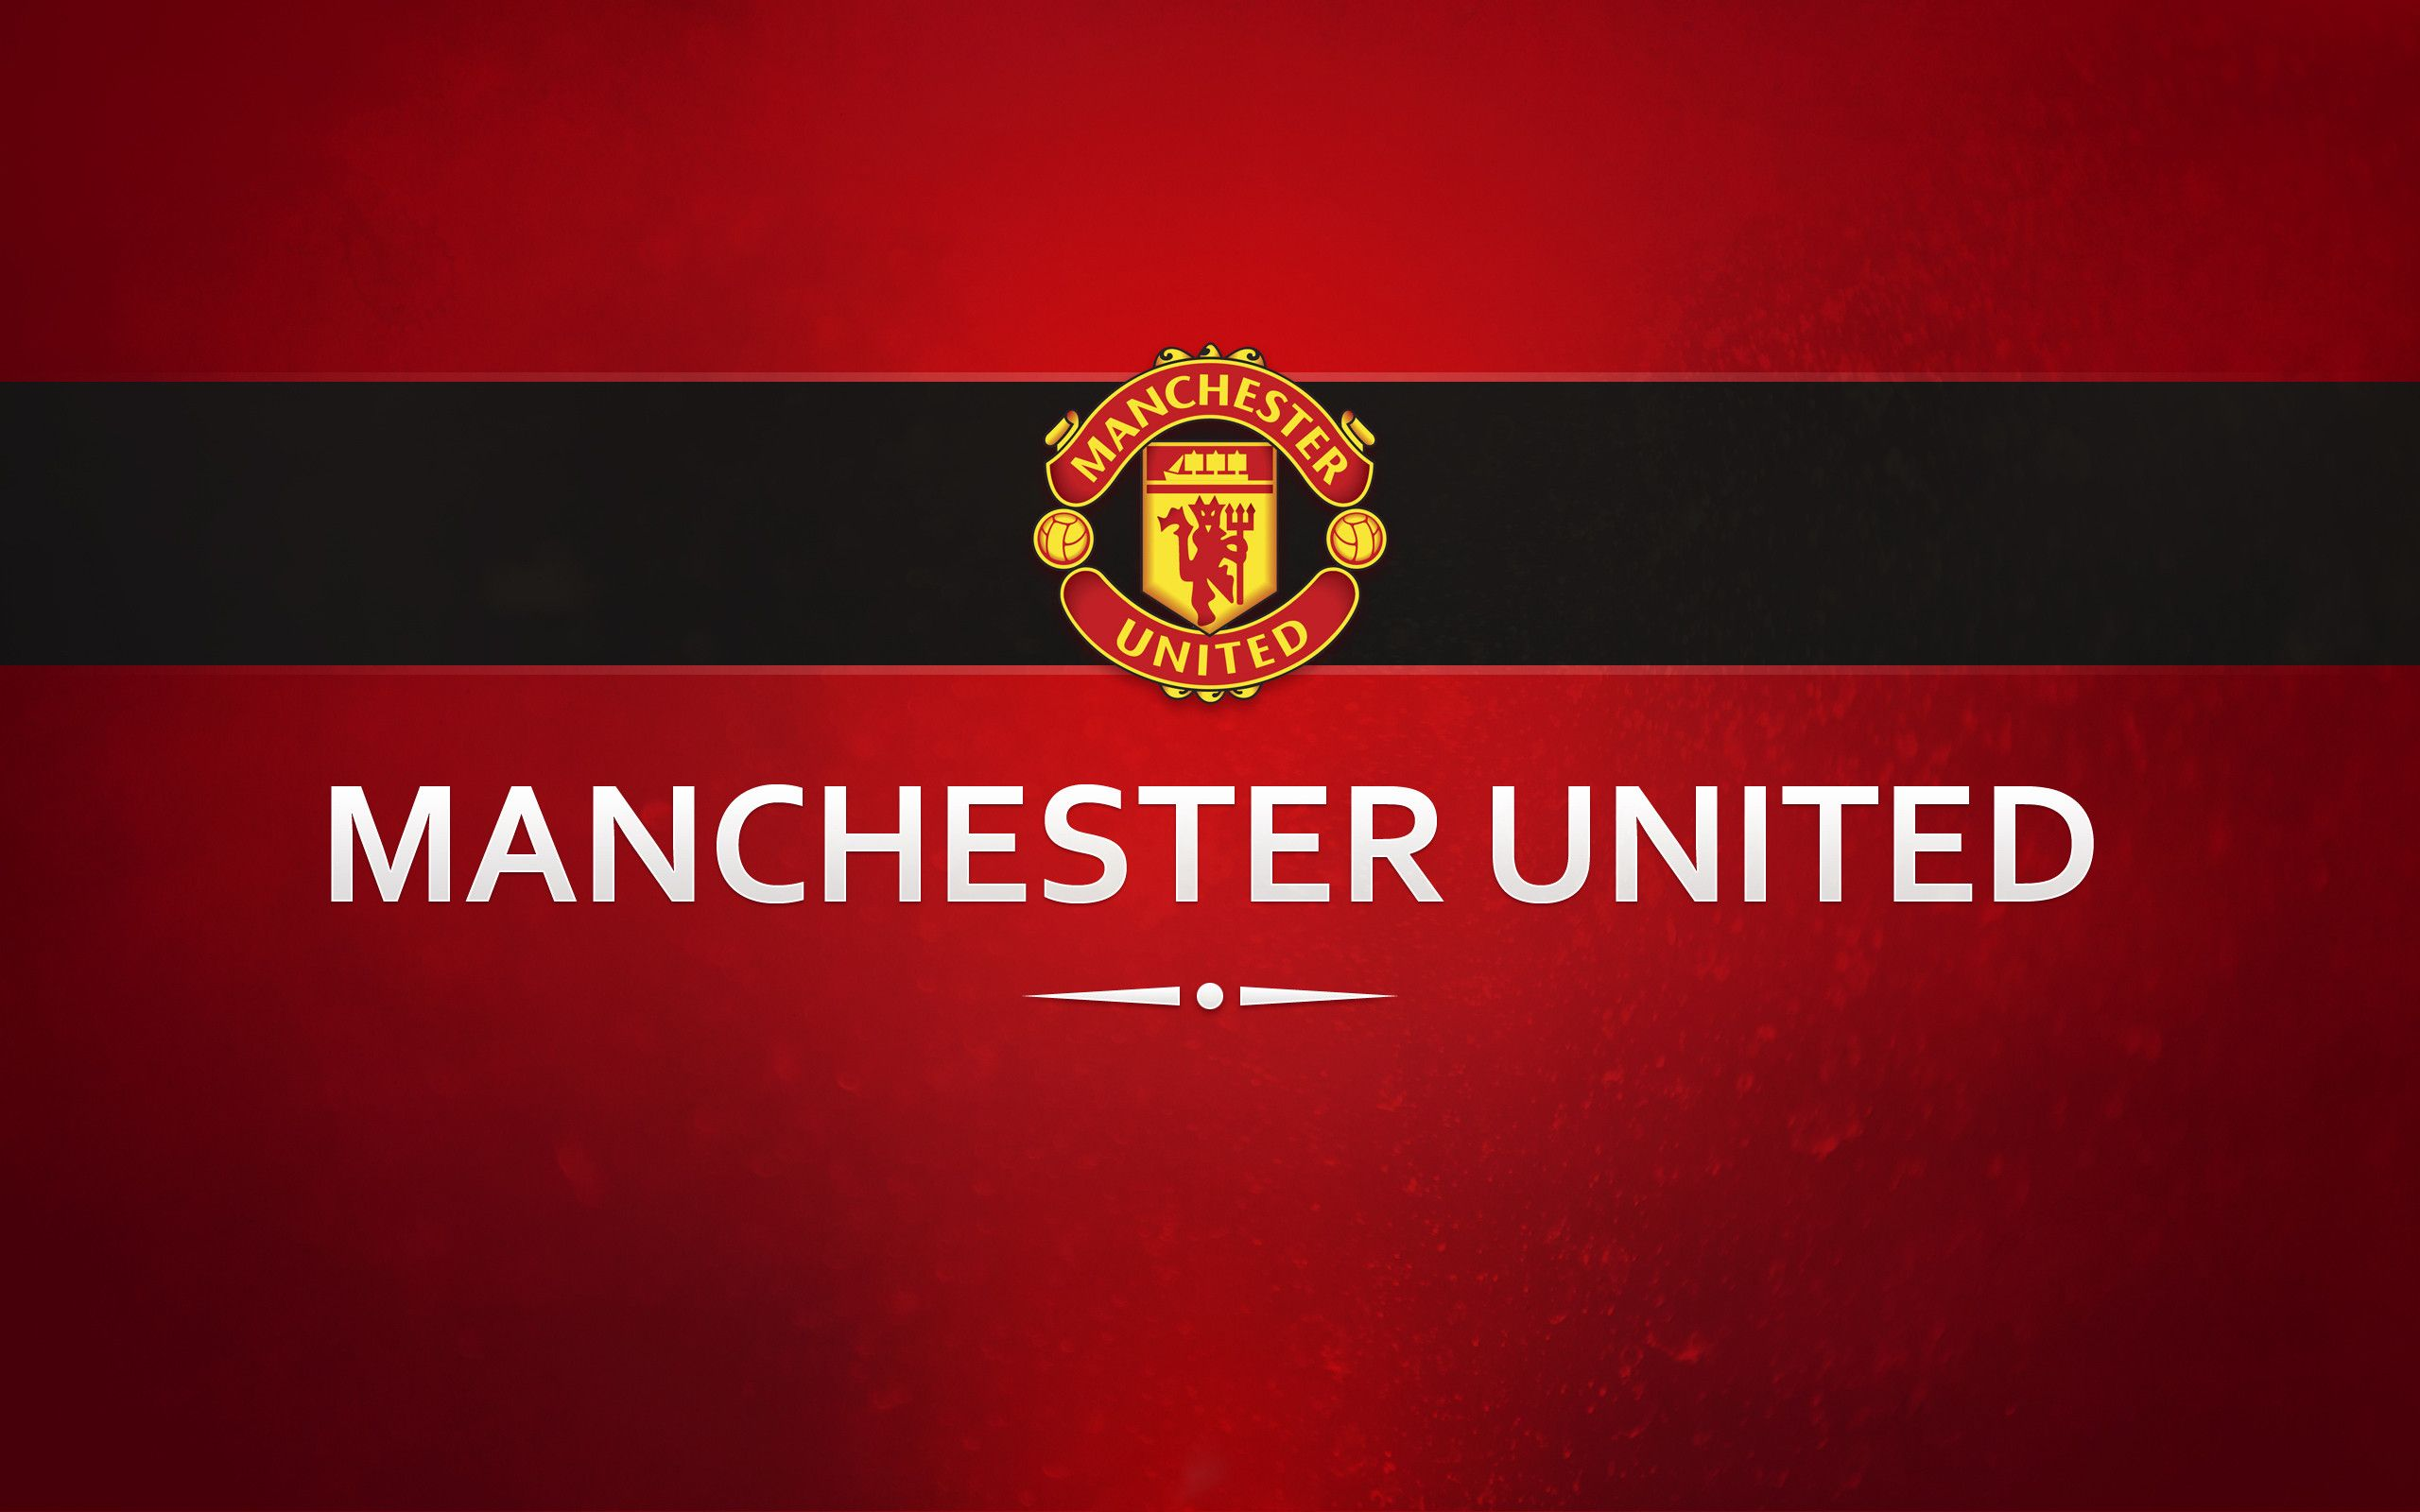 Man Utd HD Wallpapers